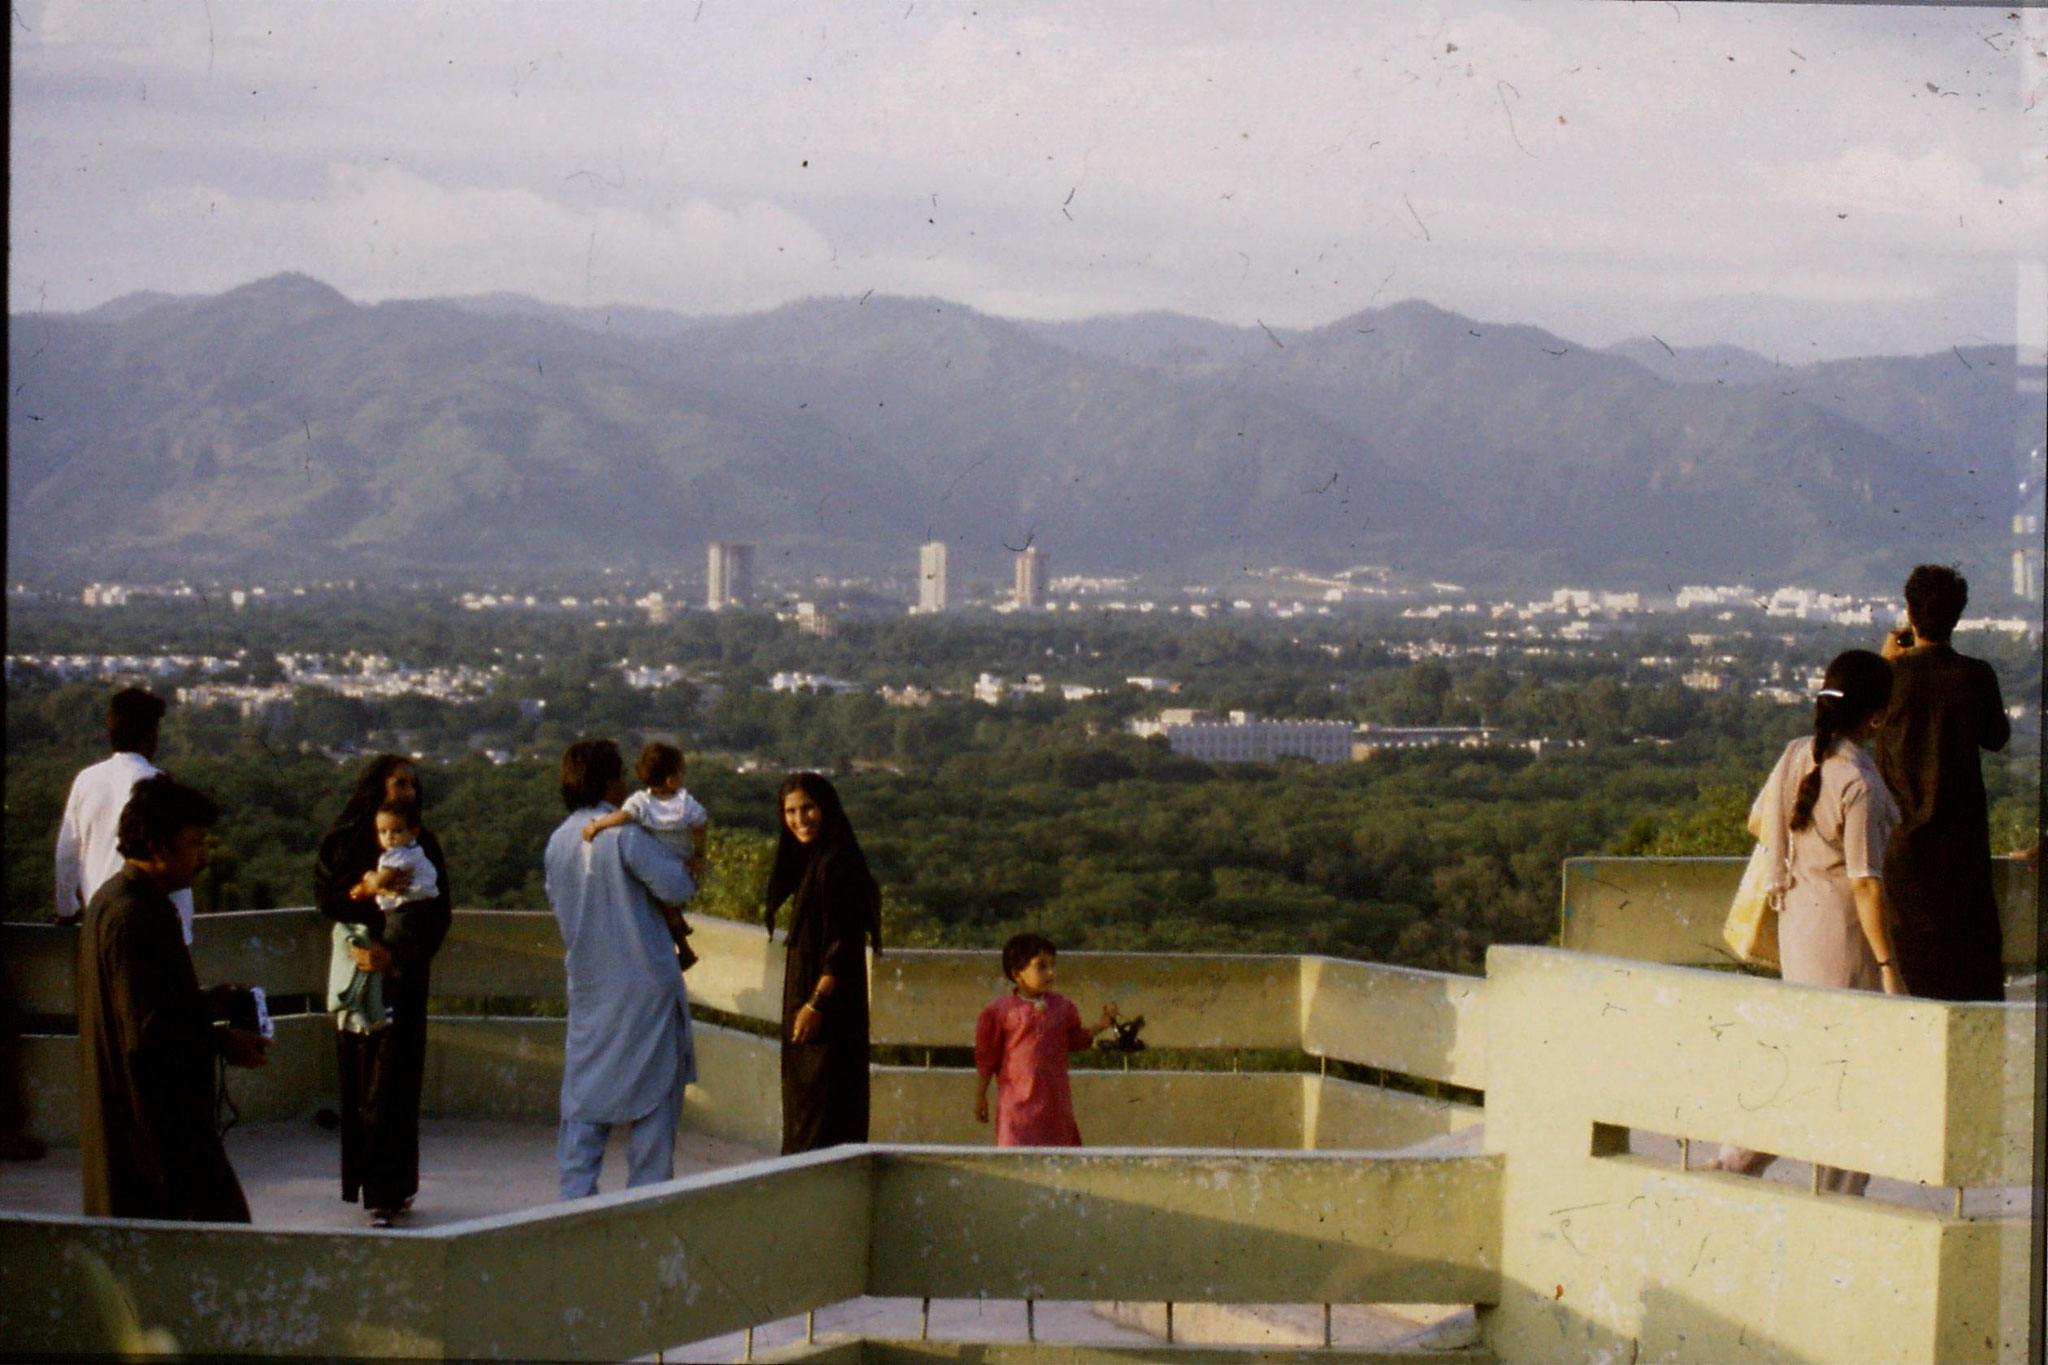 23/9/1989: 4: Islamabad from hill top Shakar Parian